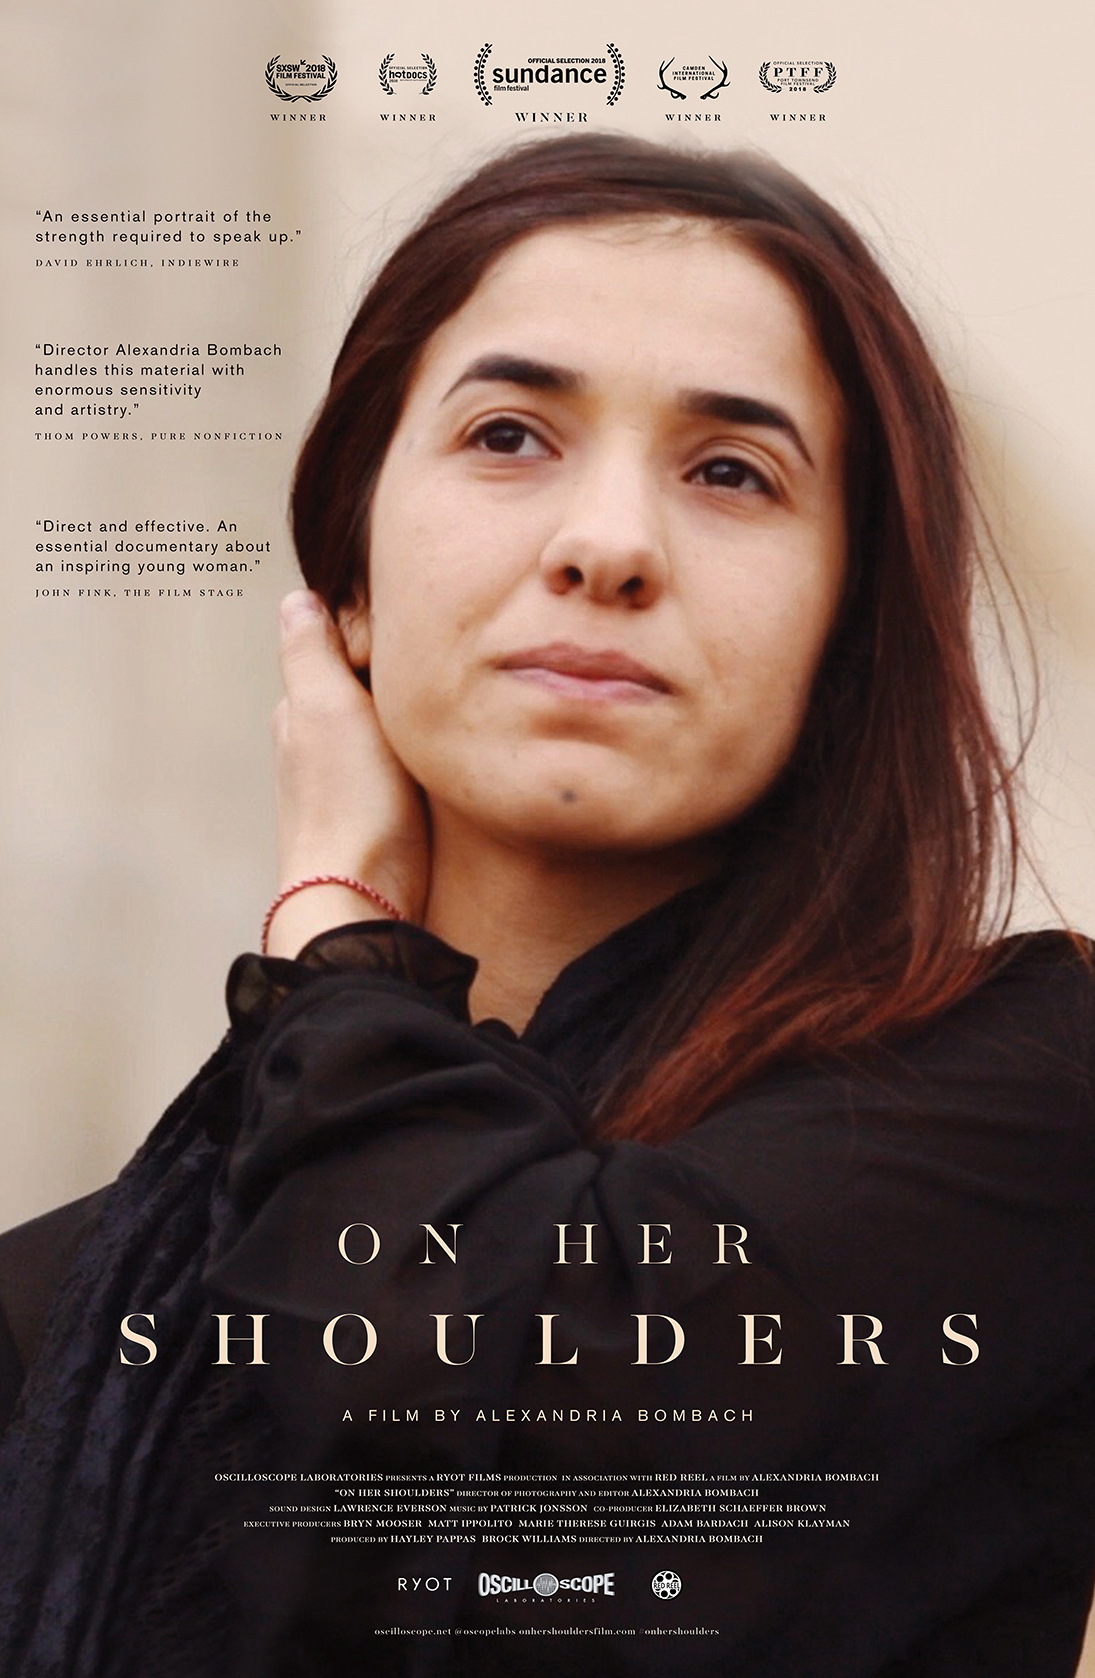 On Her Shoulders – Dec. 16th